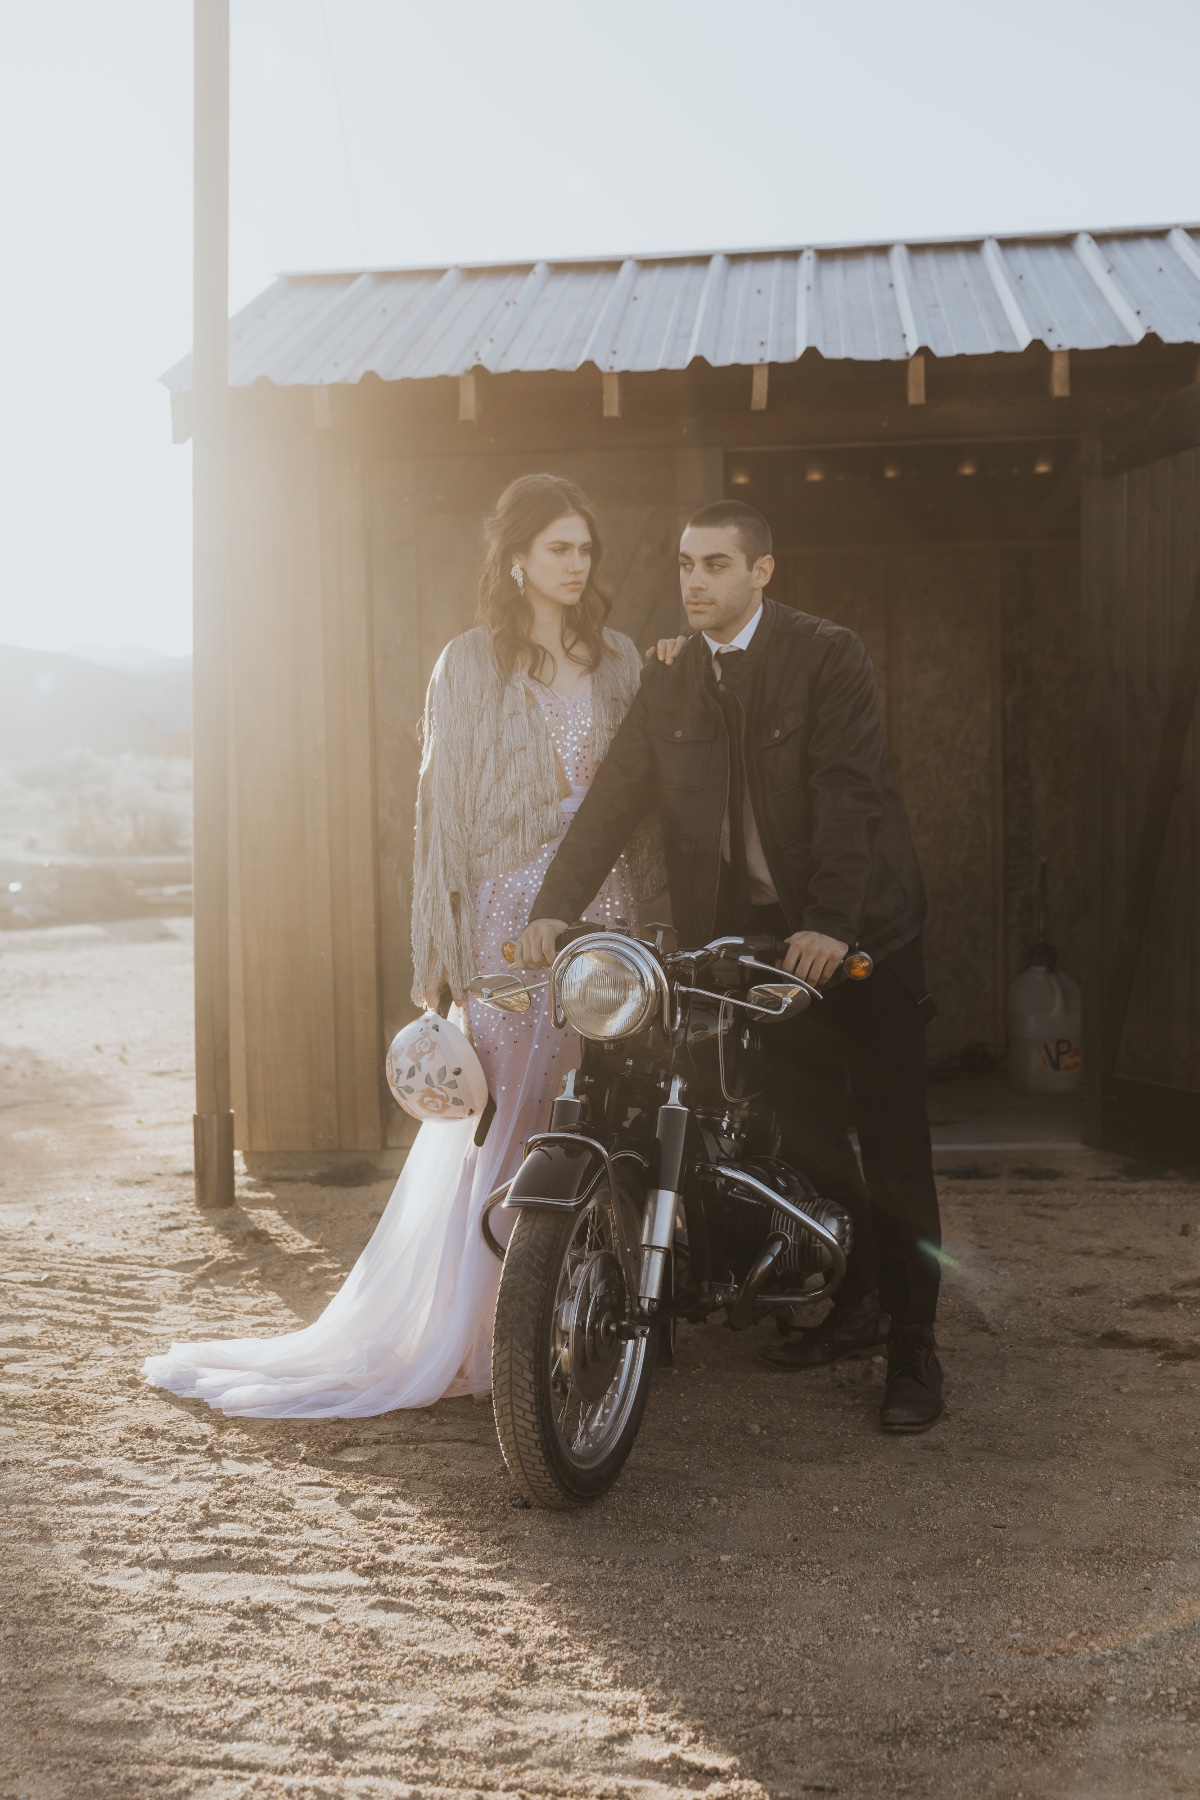 Motorcycle wedding ideas